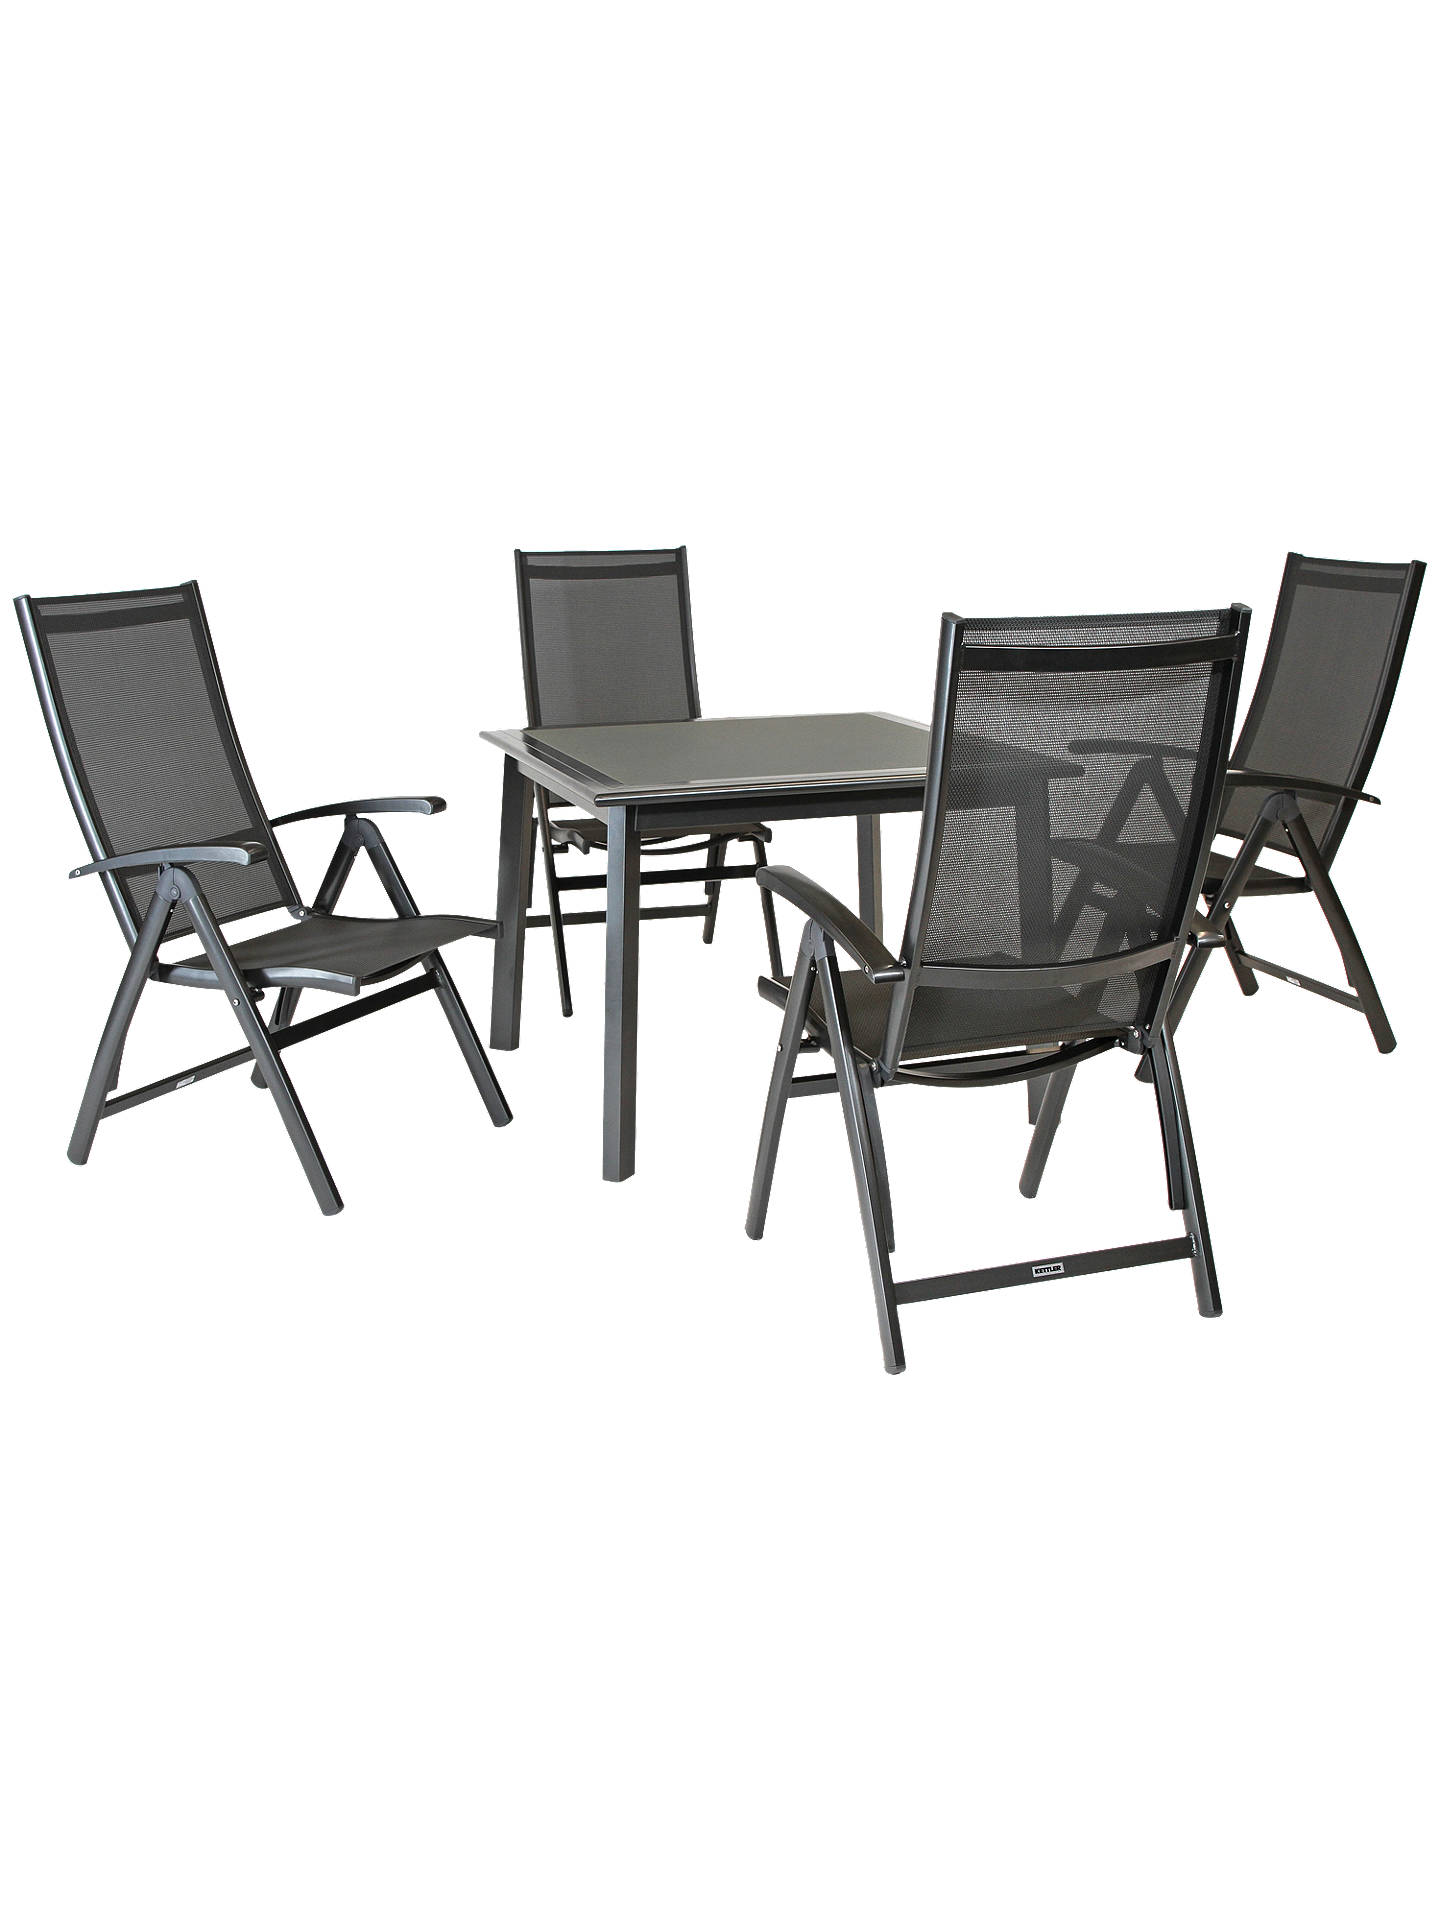 Astounding Kettler Surf 4 Seater Outdoor Multi Position Reclining Chairs And Dining Table Set Grey Creativecarmelina Interior Chair Design Creativecarmelinacom